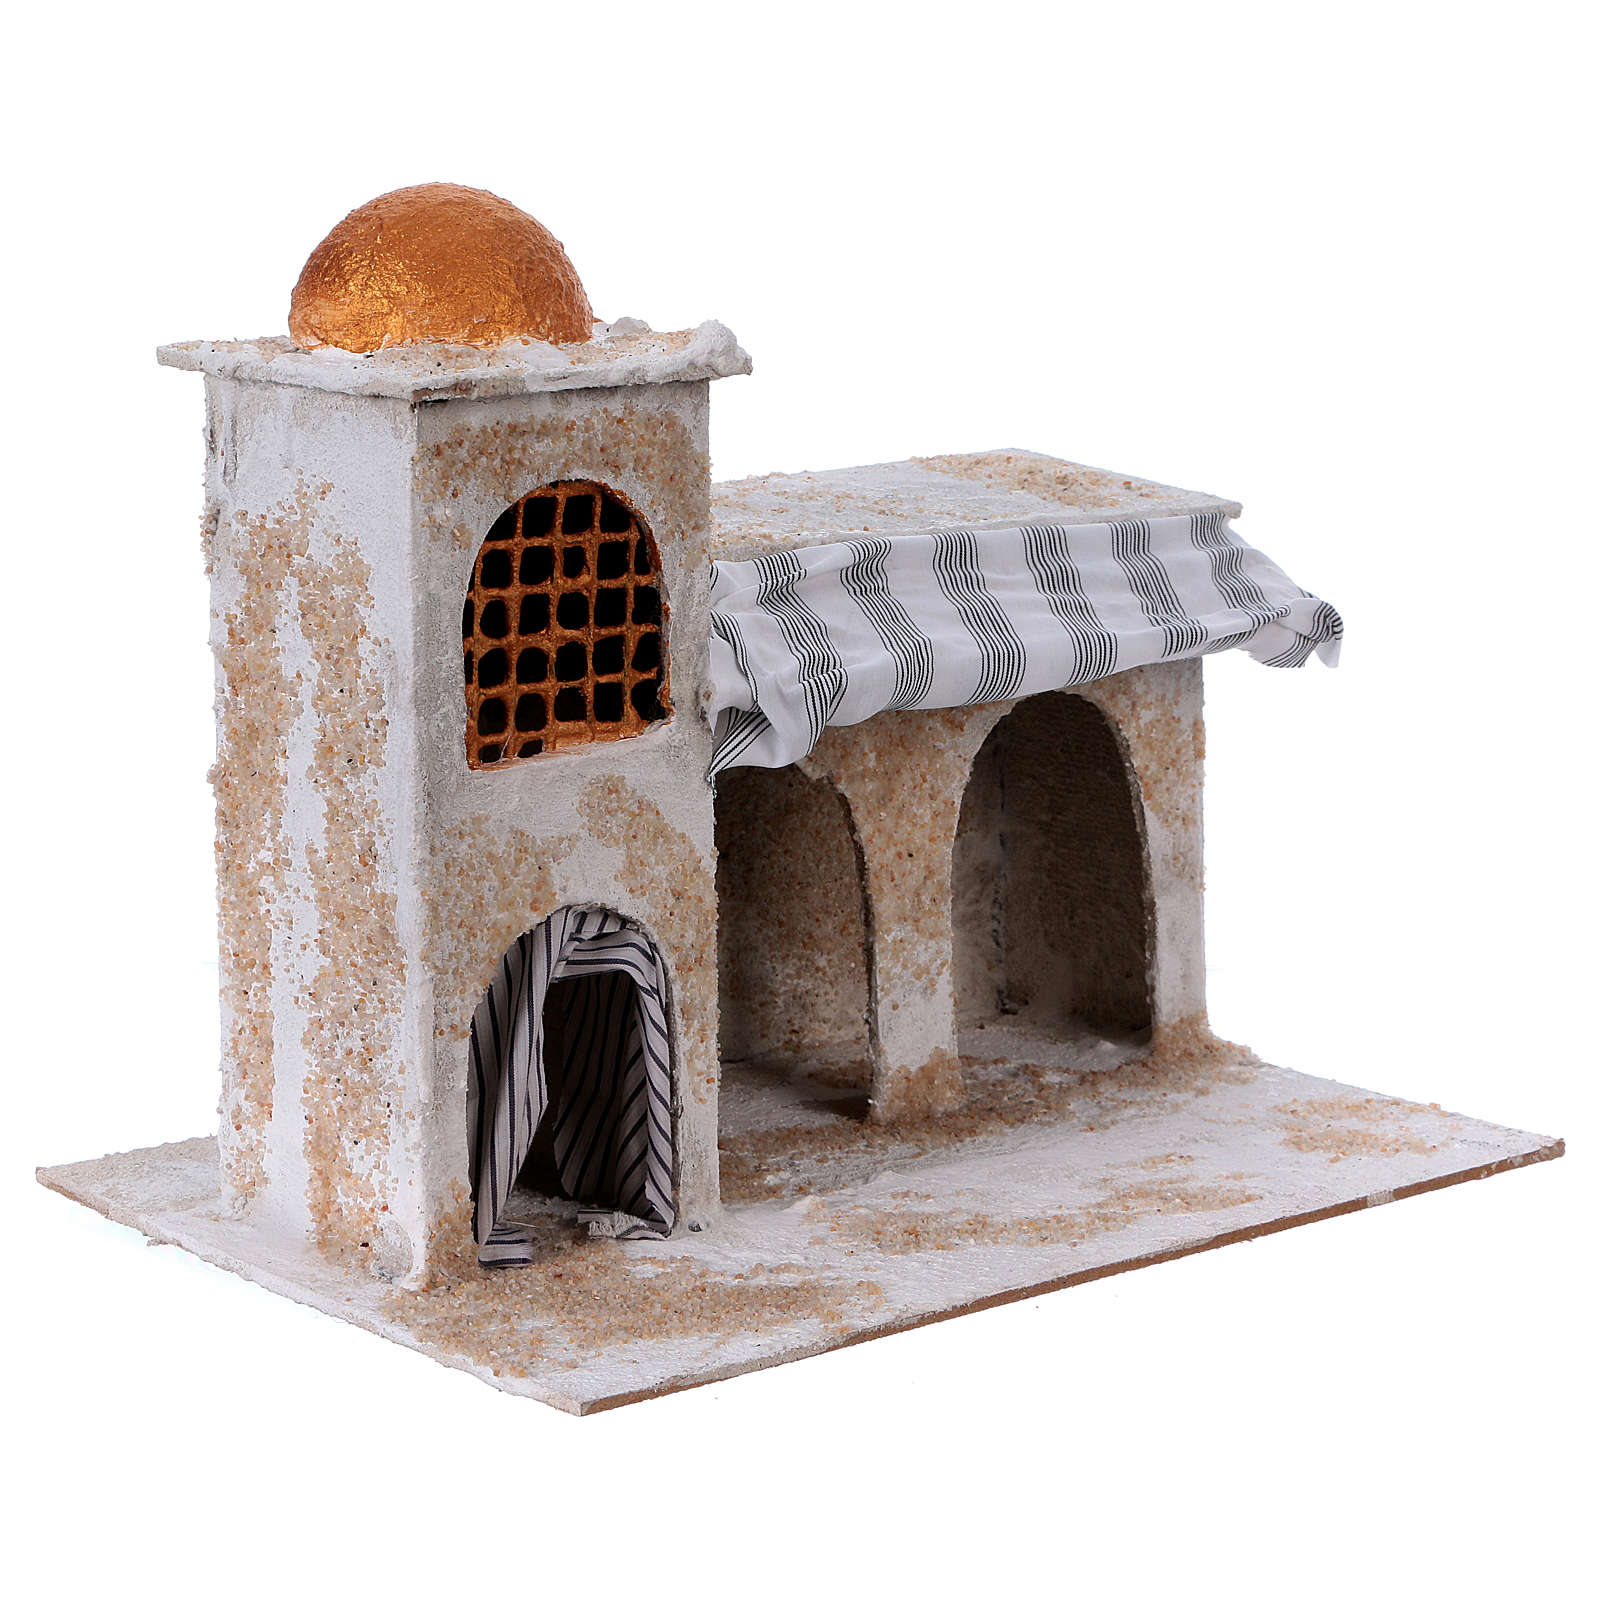 Arab house with curtains for Nativity scene 25x30x20 cm 4